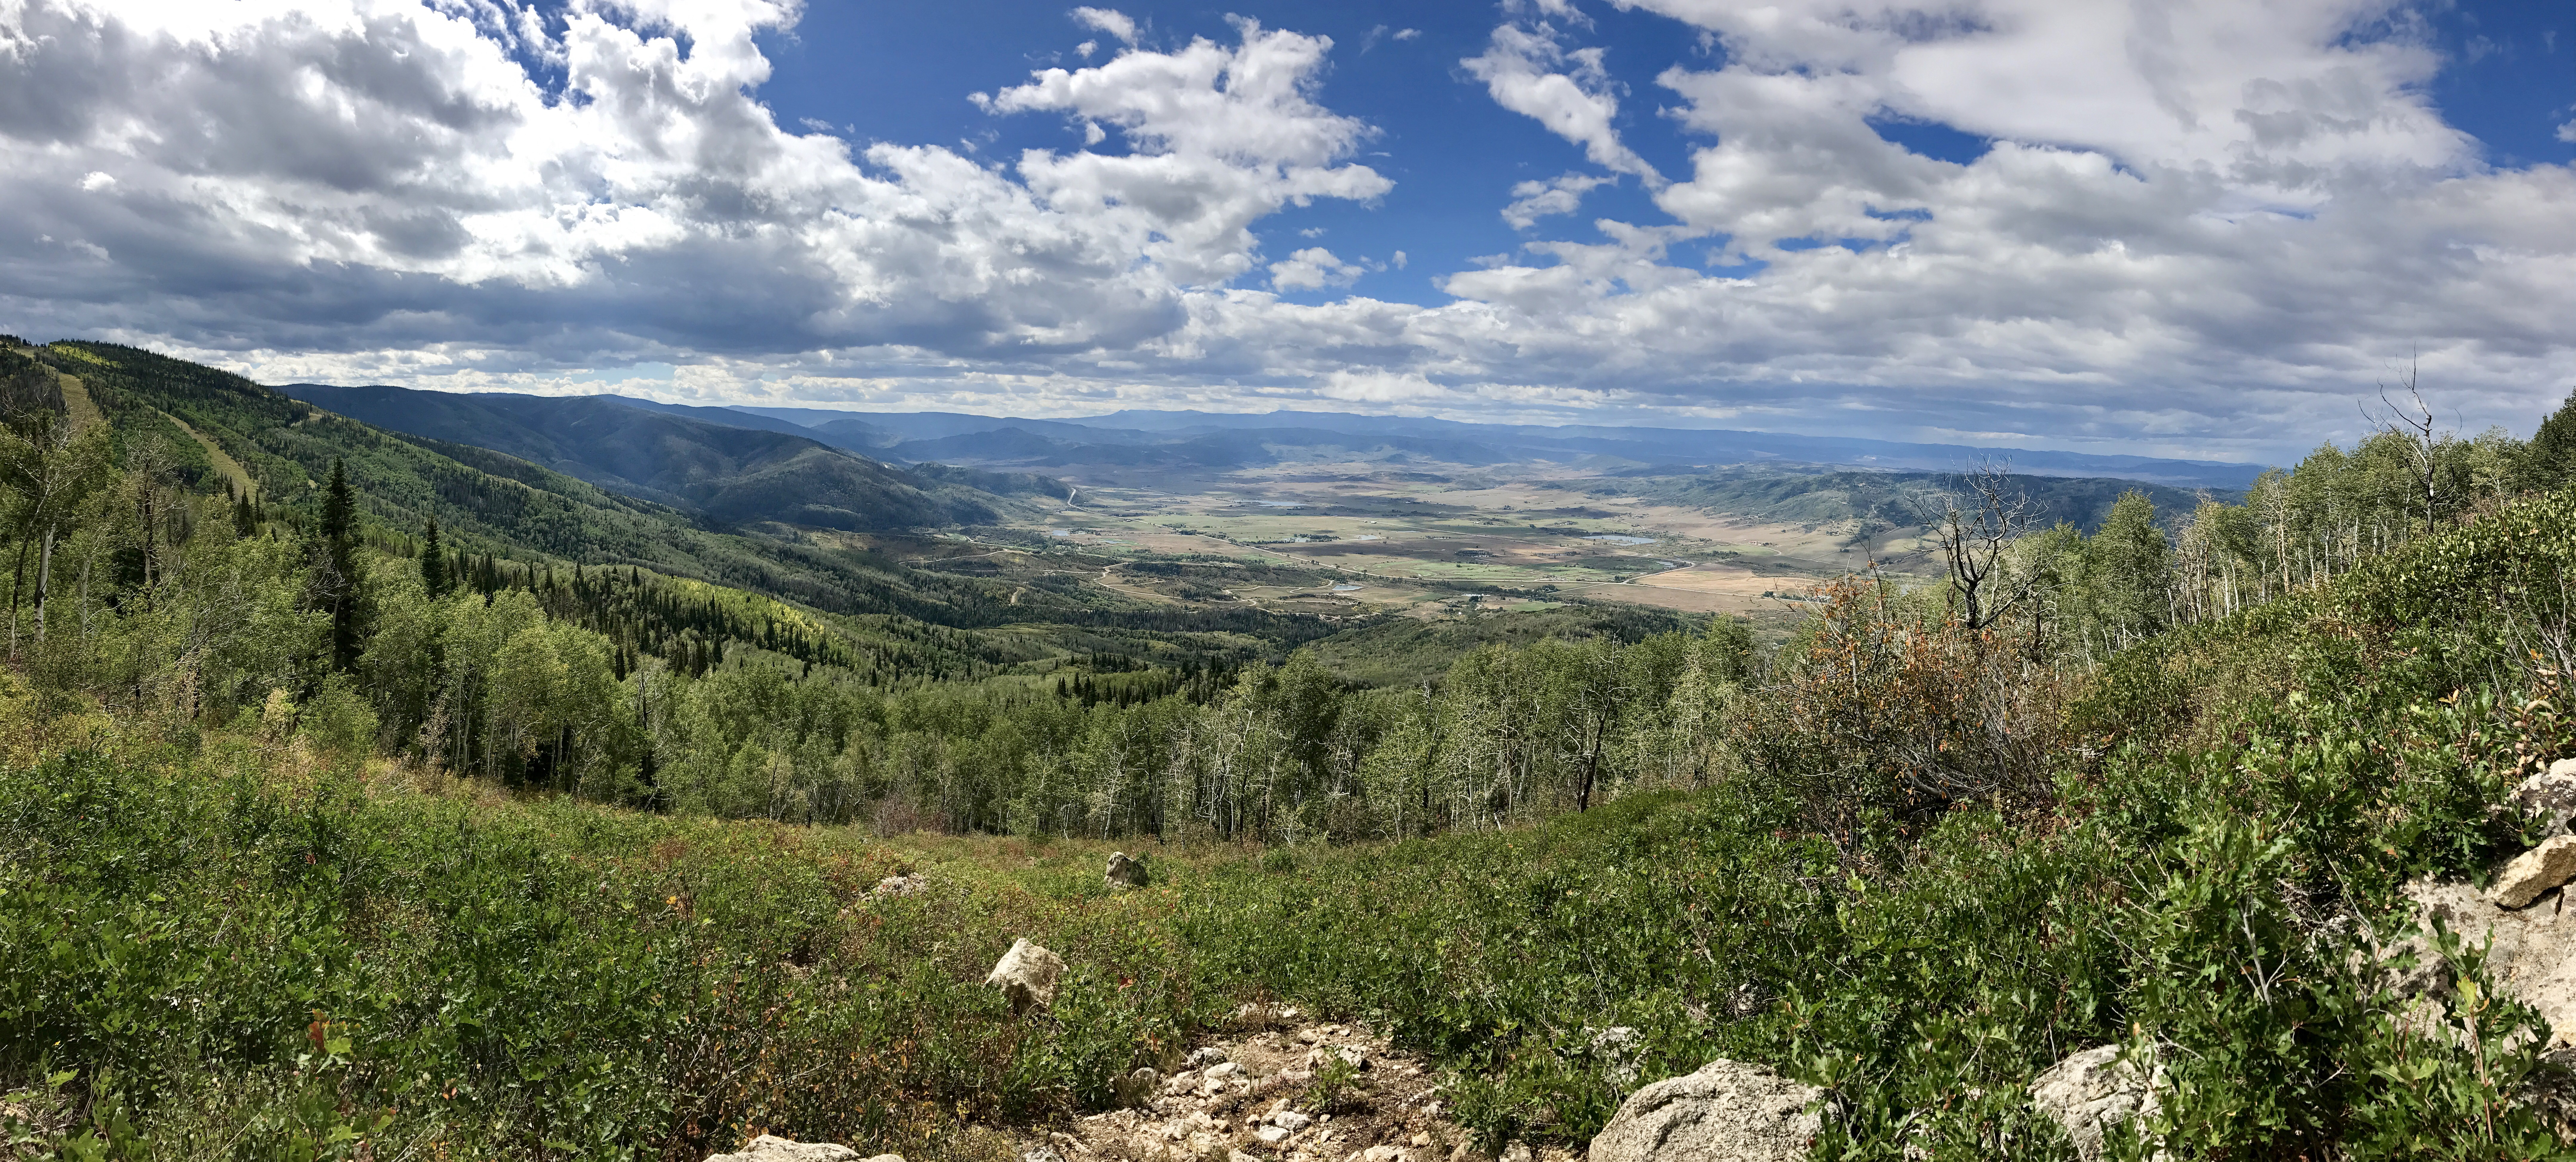 Yampa Valley